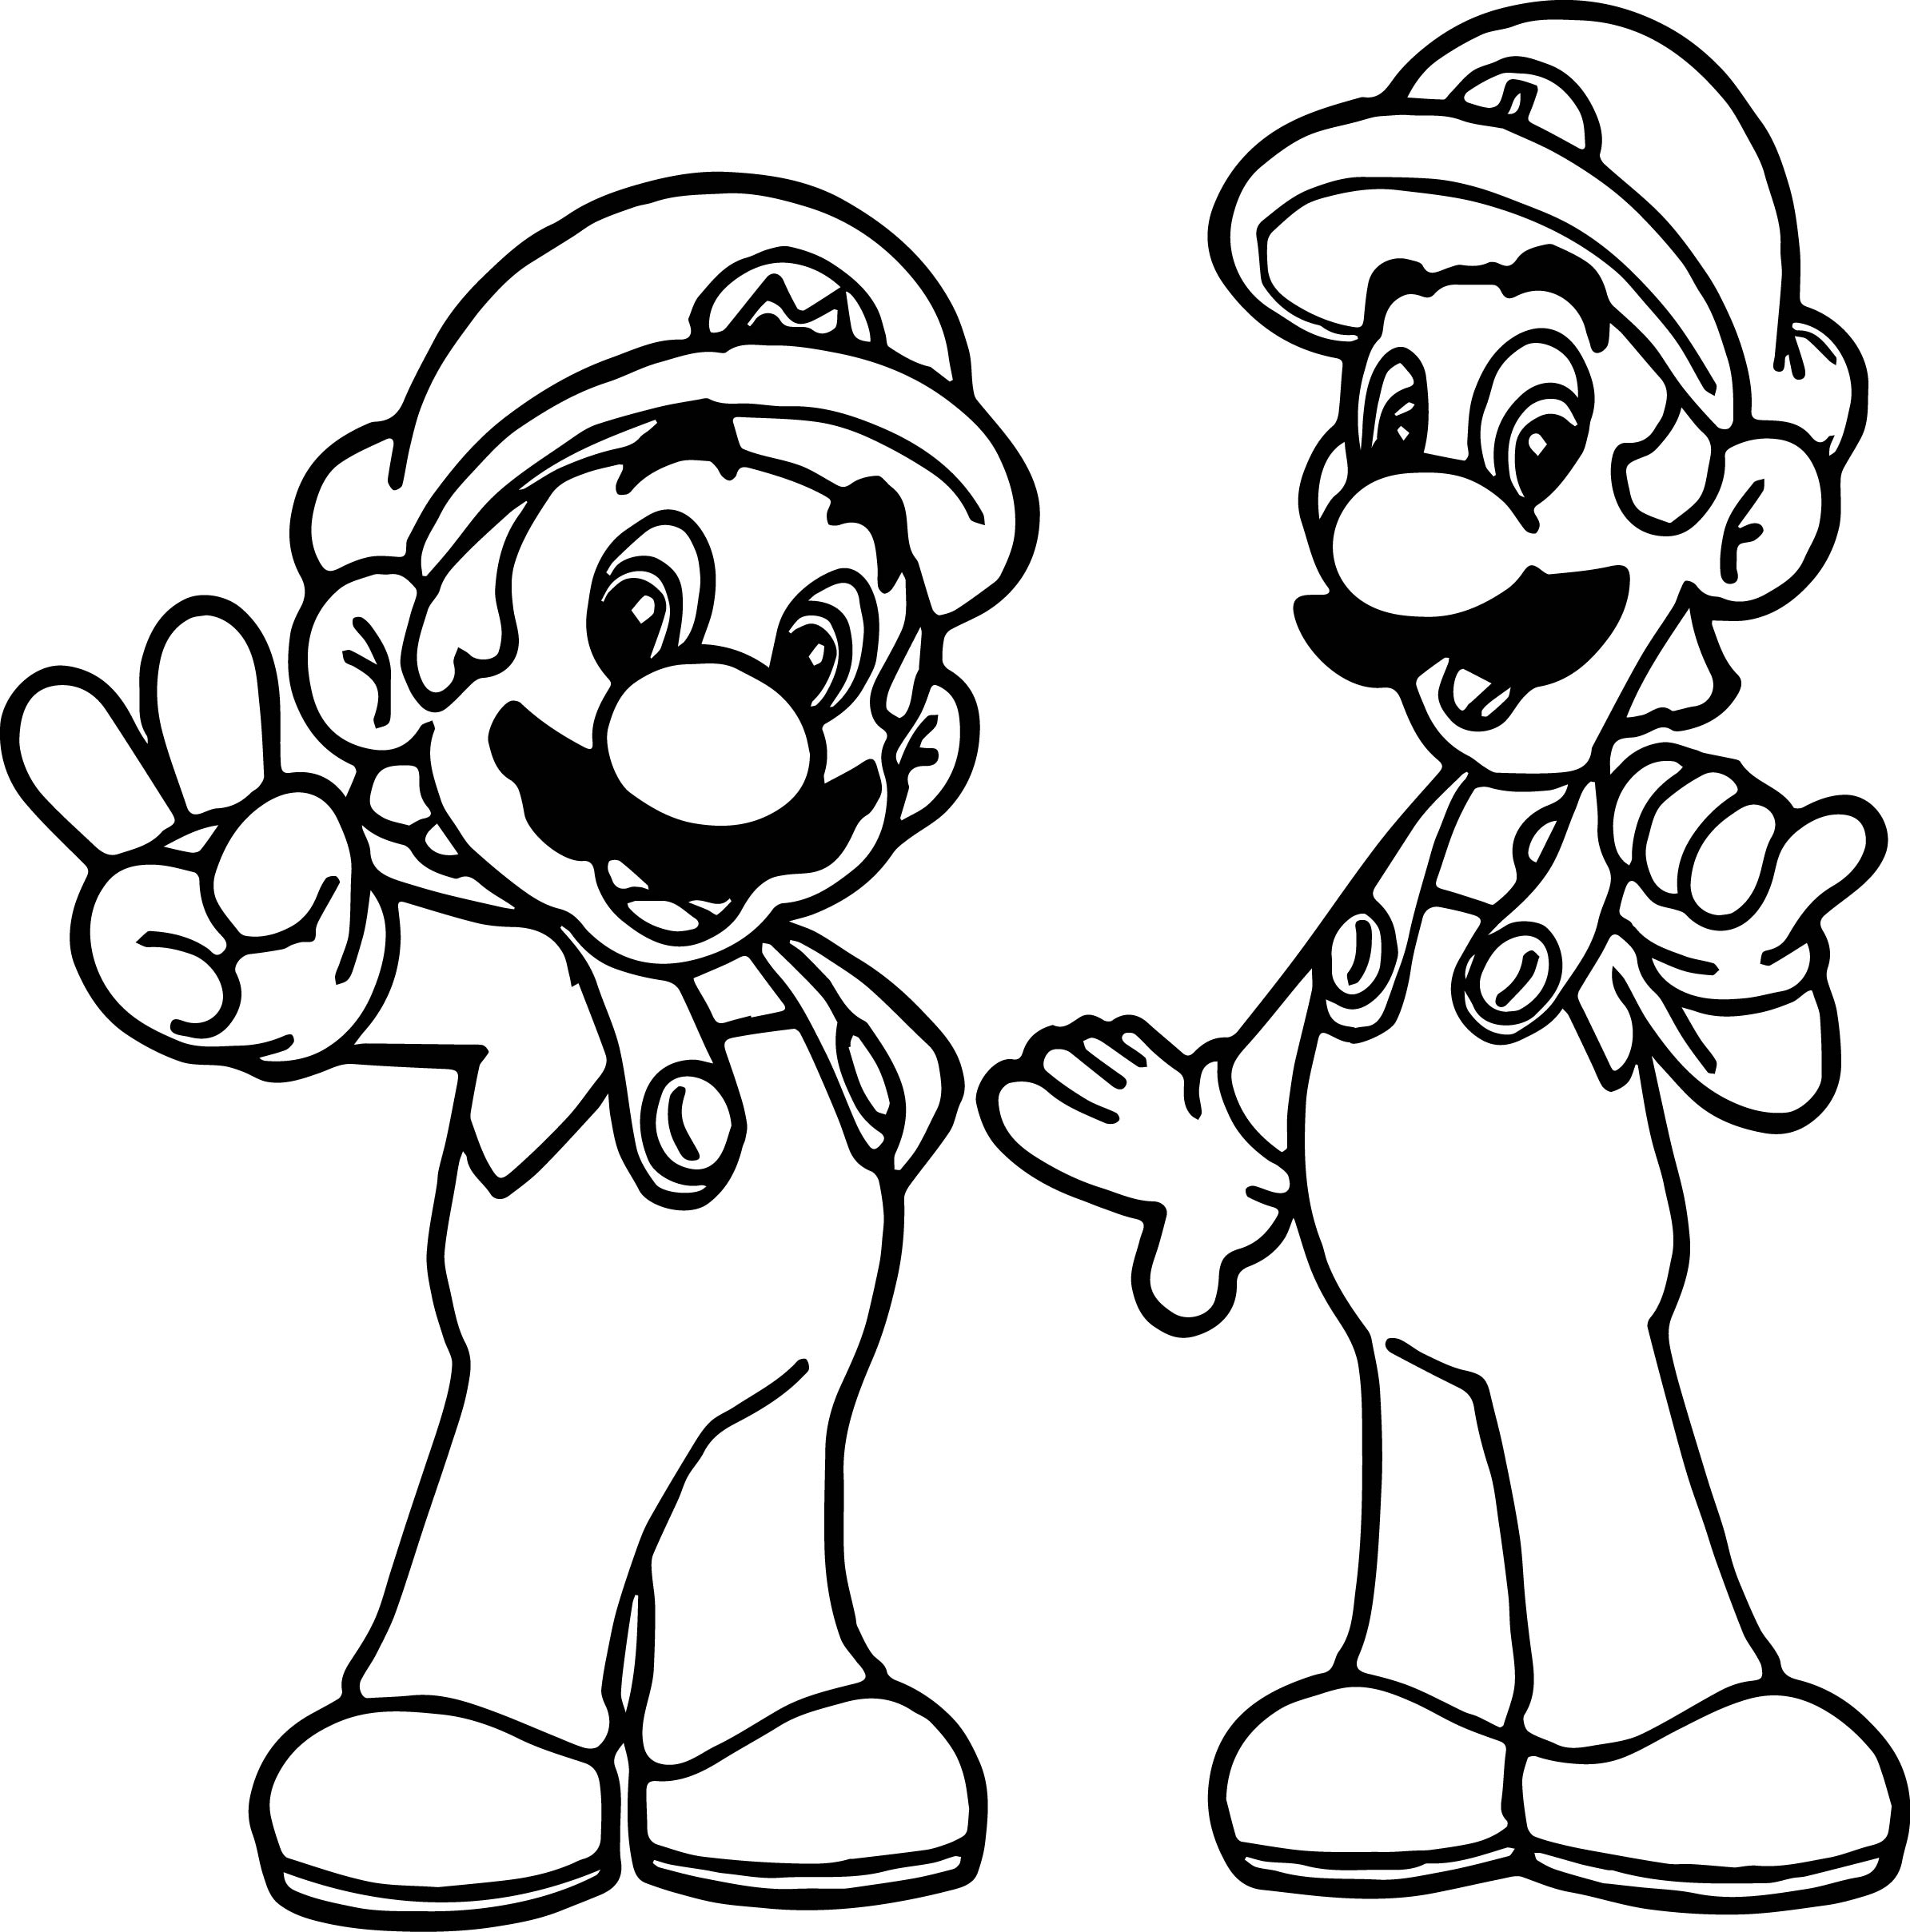 super mario pictures super mario coloring pages to print at getdrawings free pictures super mario